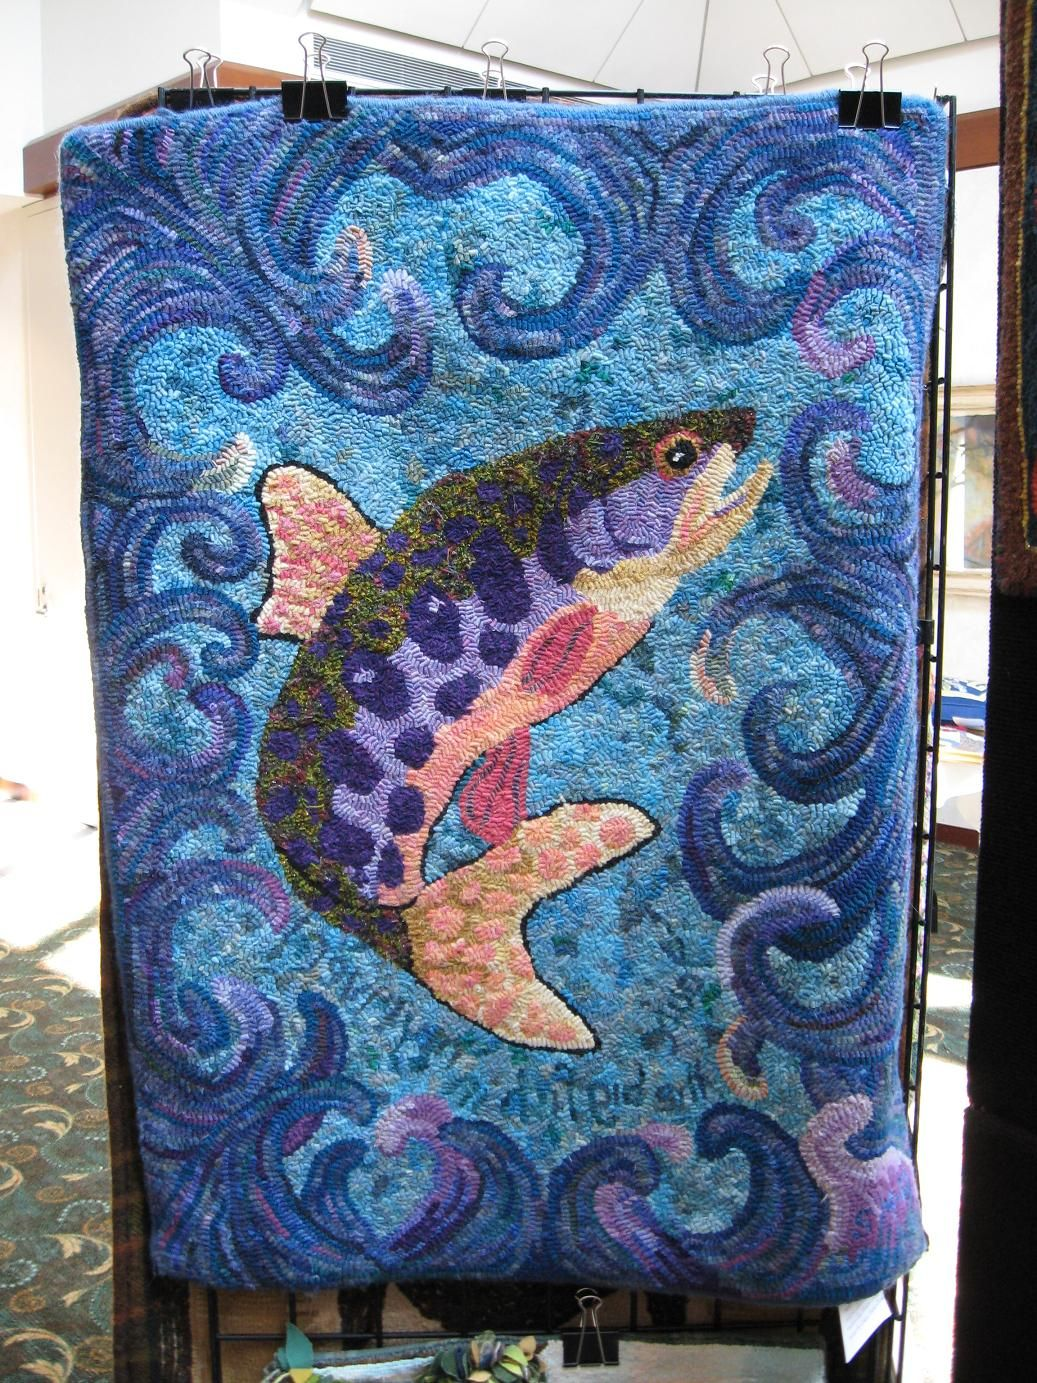 A Few Rugs From Holland Michigan Rug Hooking Patterns Rug Hooking Designs Hand Hooked Rugs